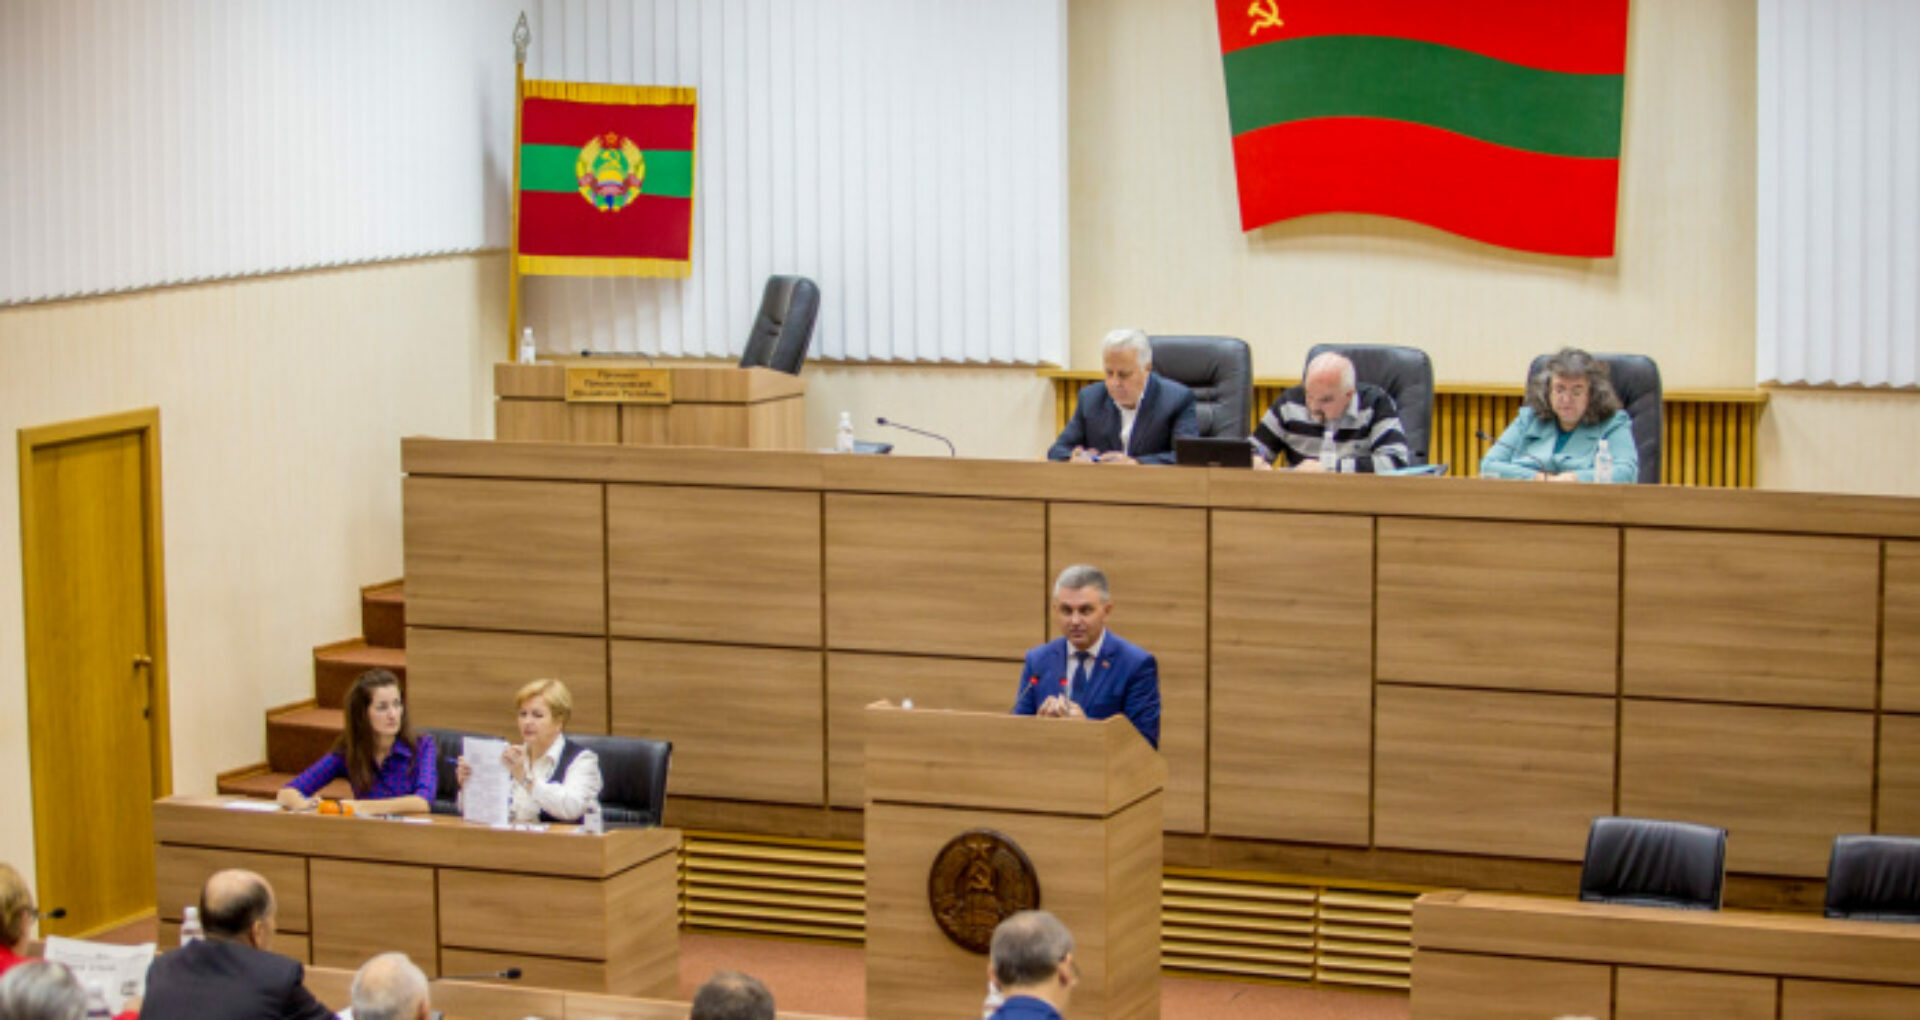 Promo-Lex Report Finds that the Russian Authorities Continue to Influence the Events in Breakaway Transnistria Region